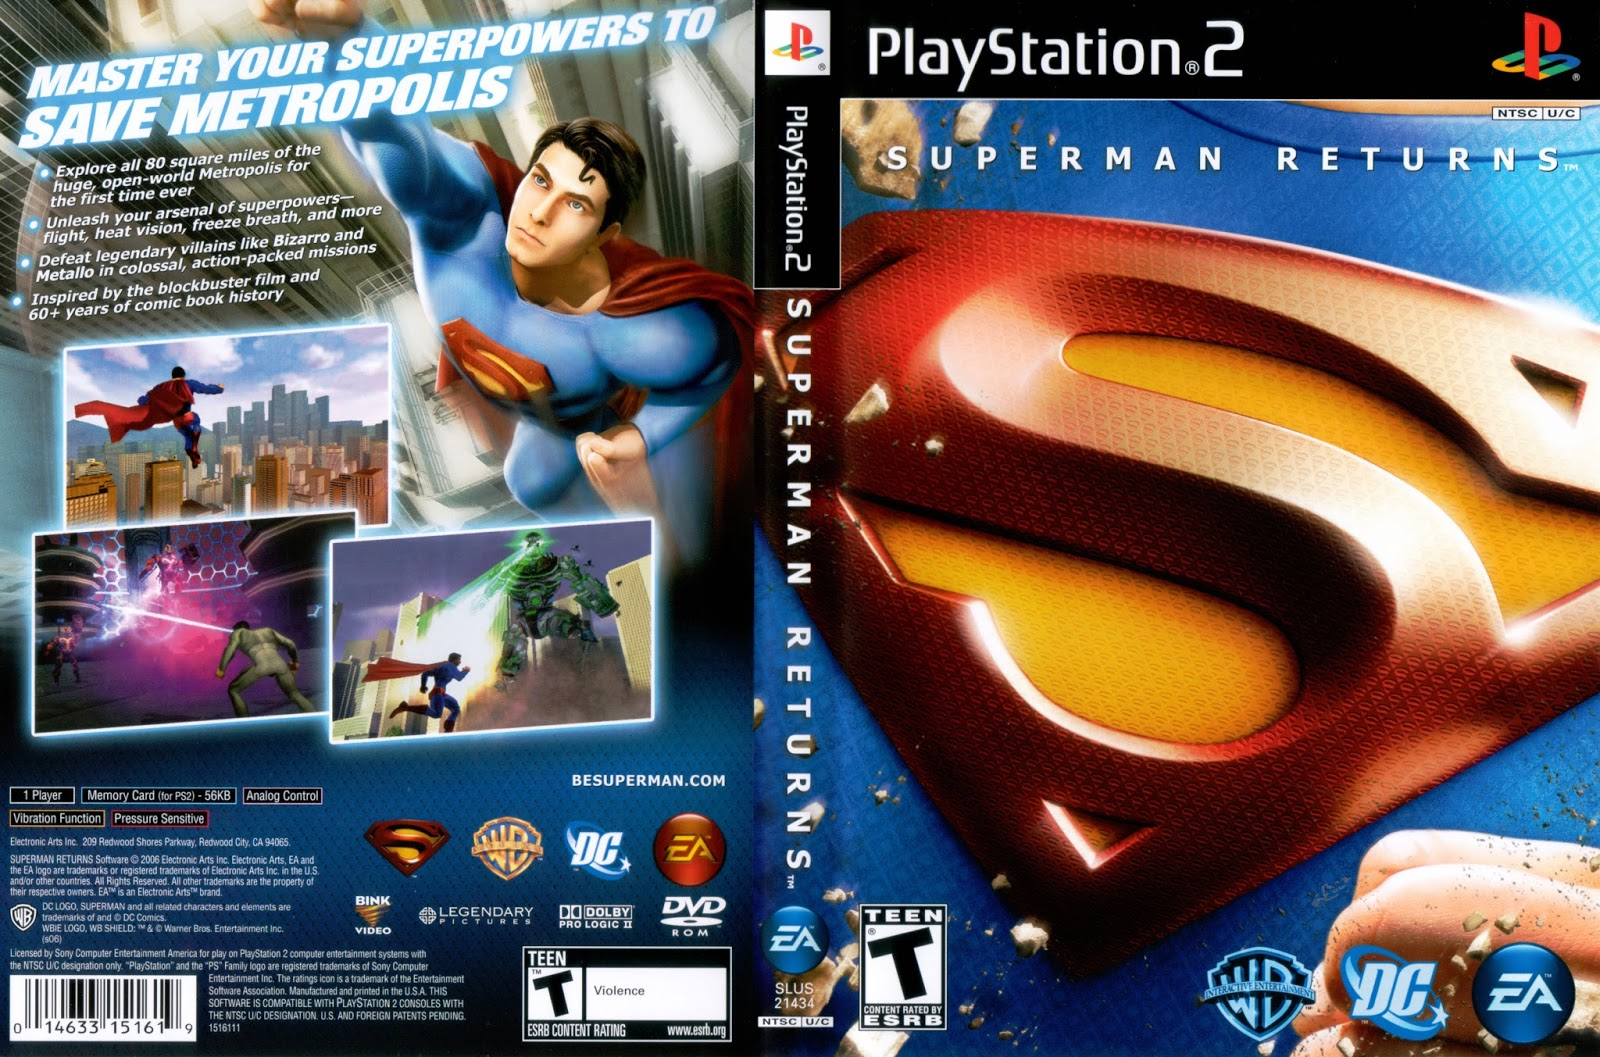 Superman Returns (video game)